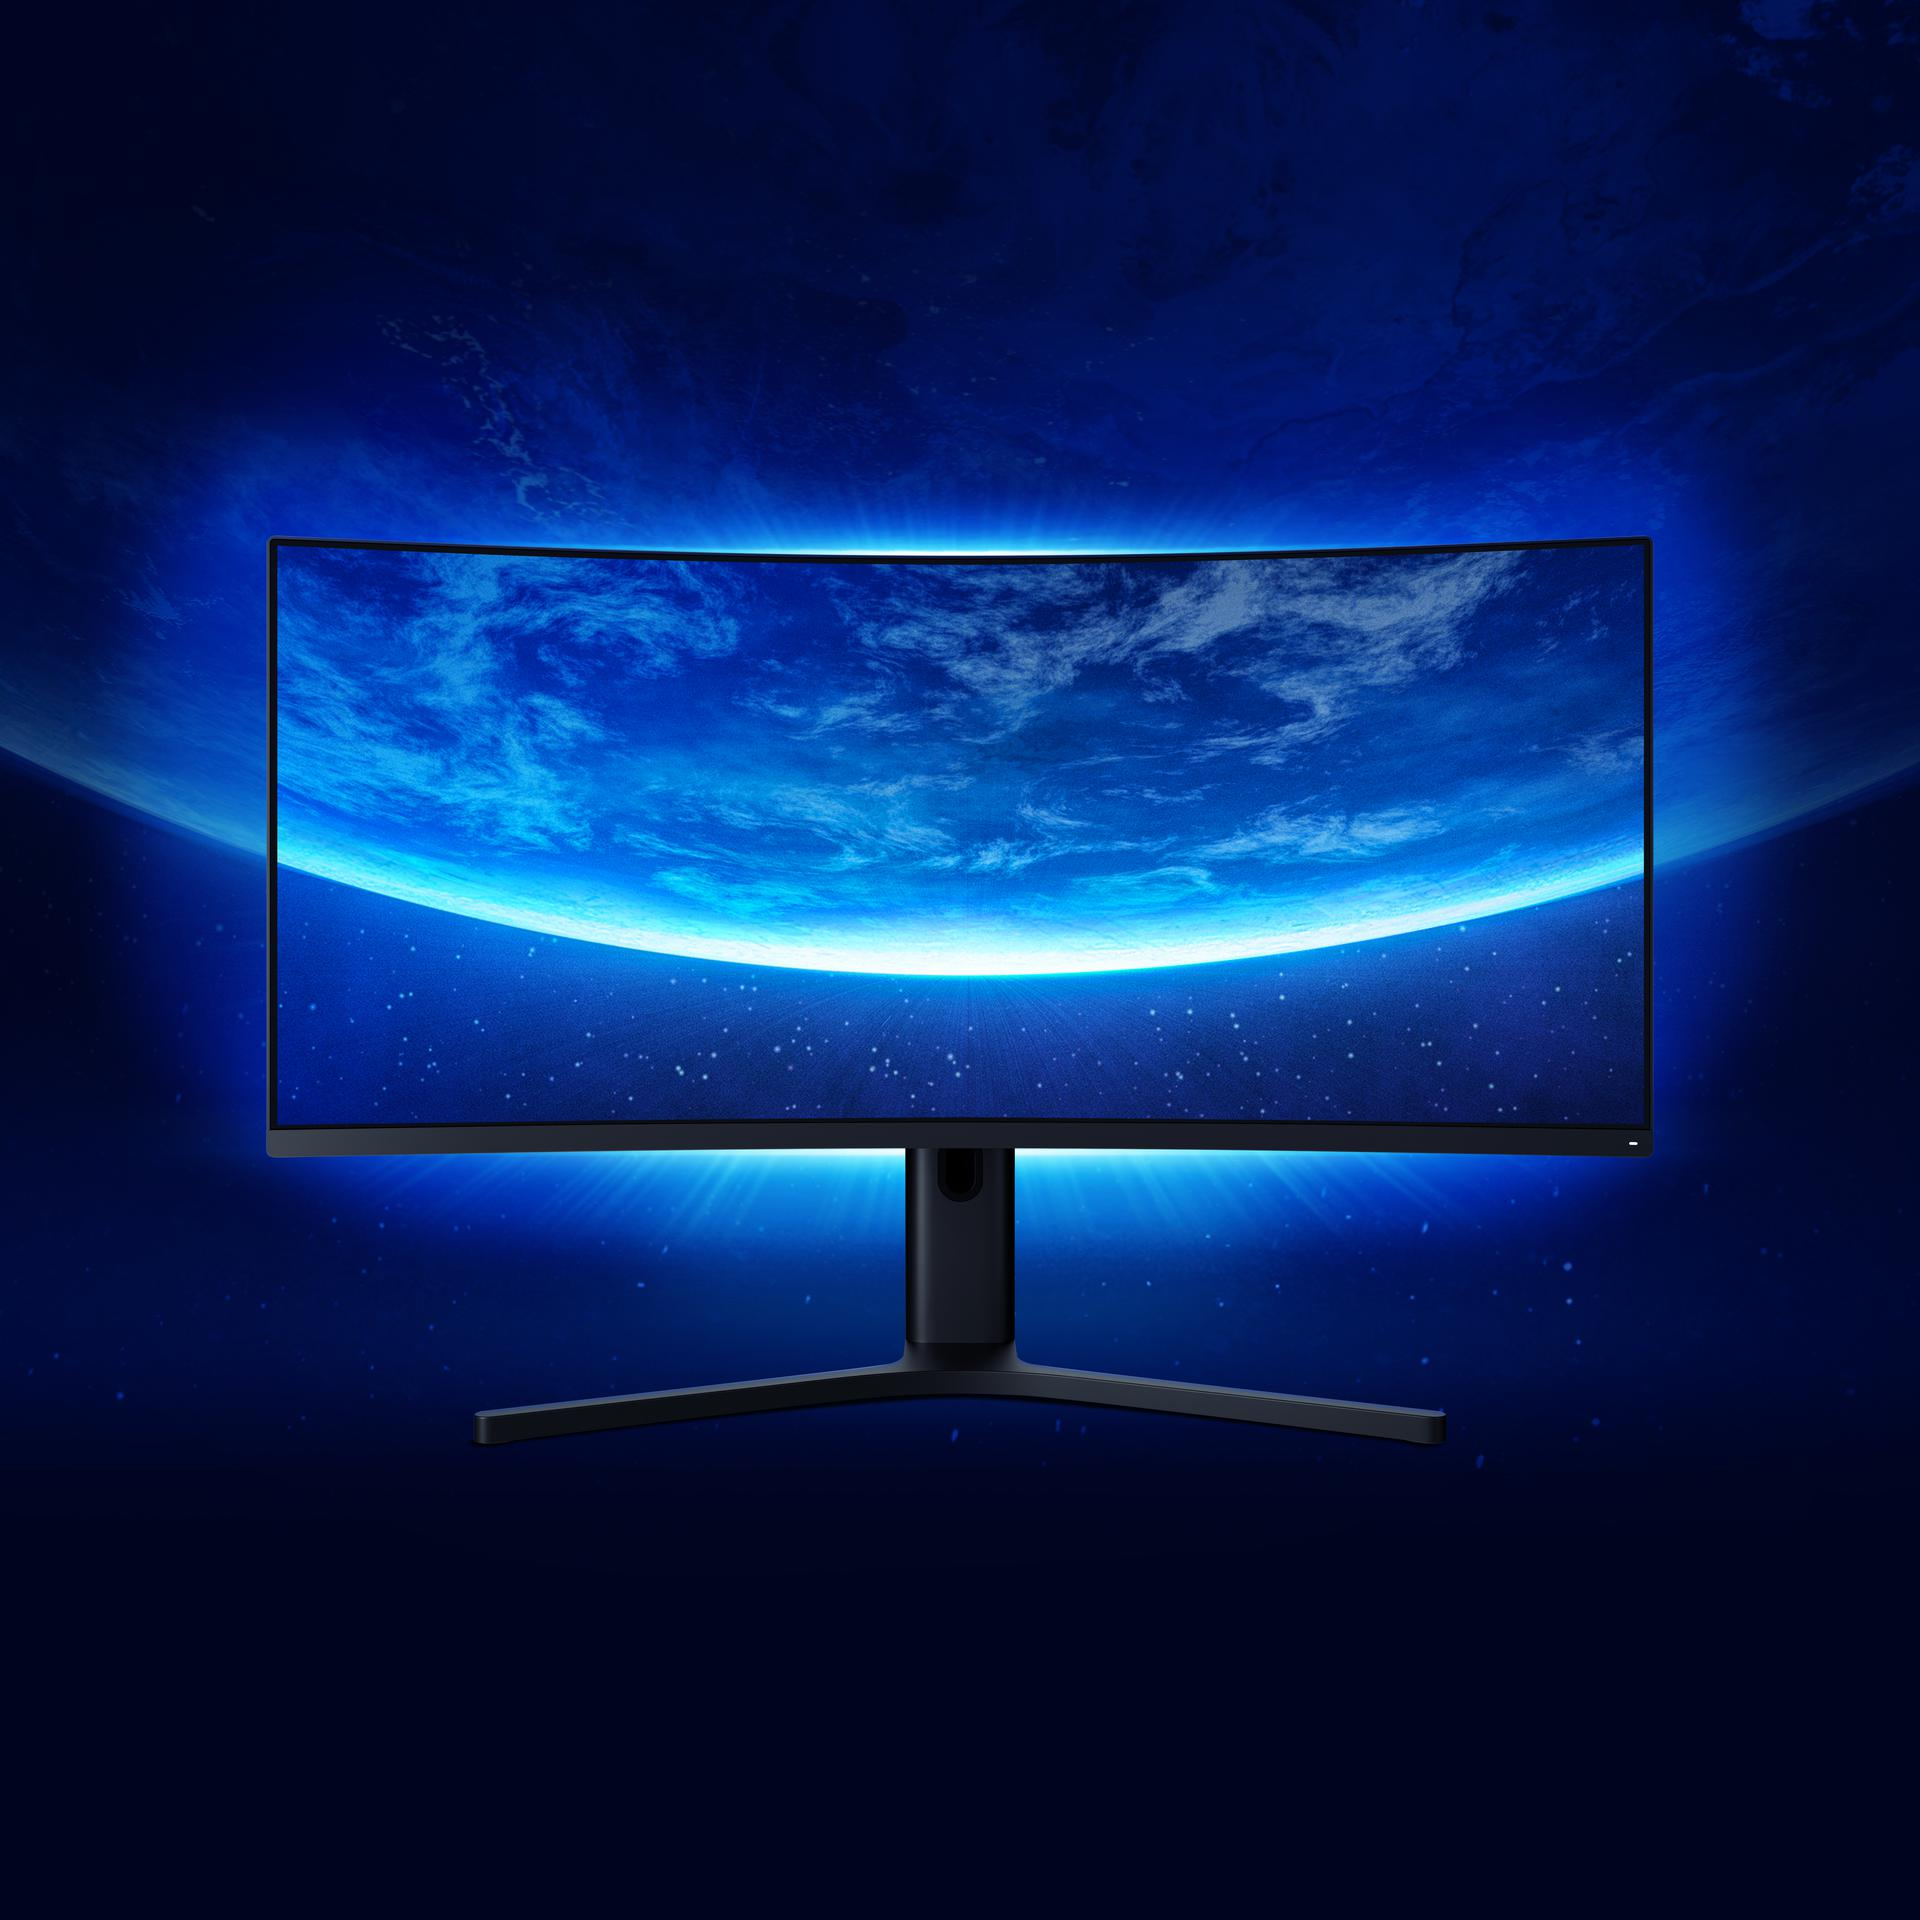 359412 mi%20curved%20gaming%20monitor 01 cd99e7 original 1594896697